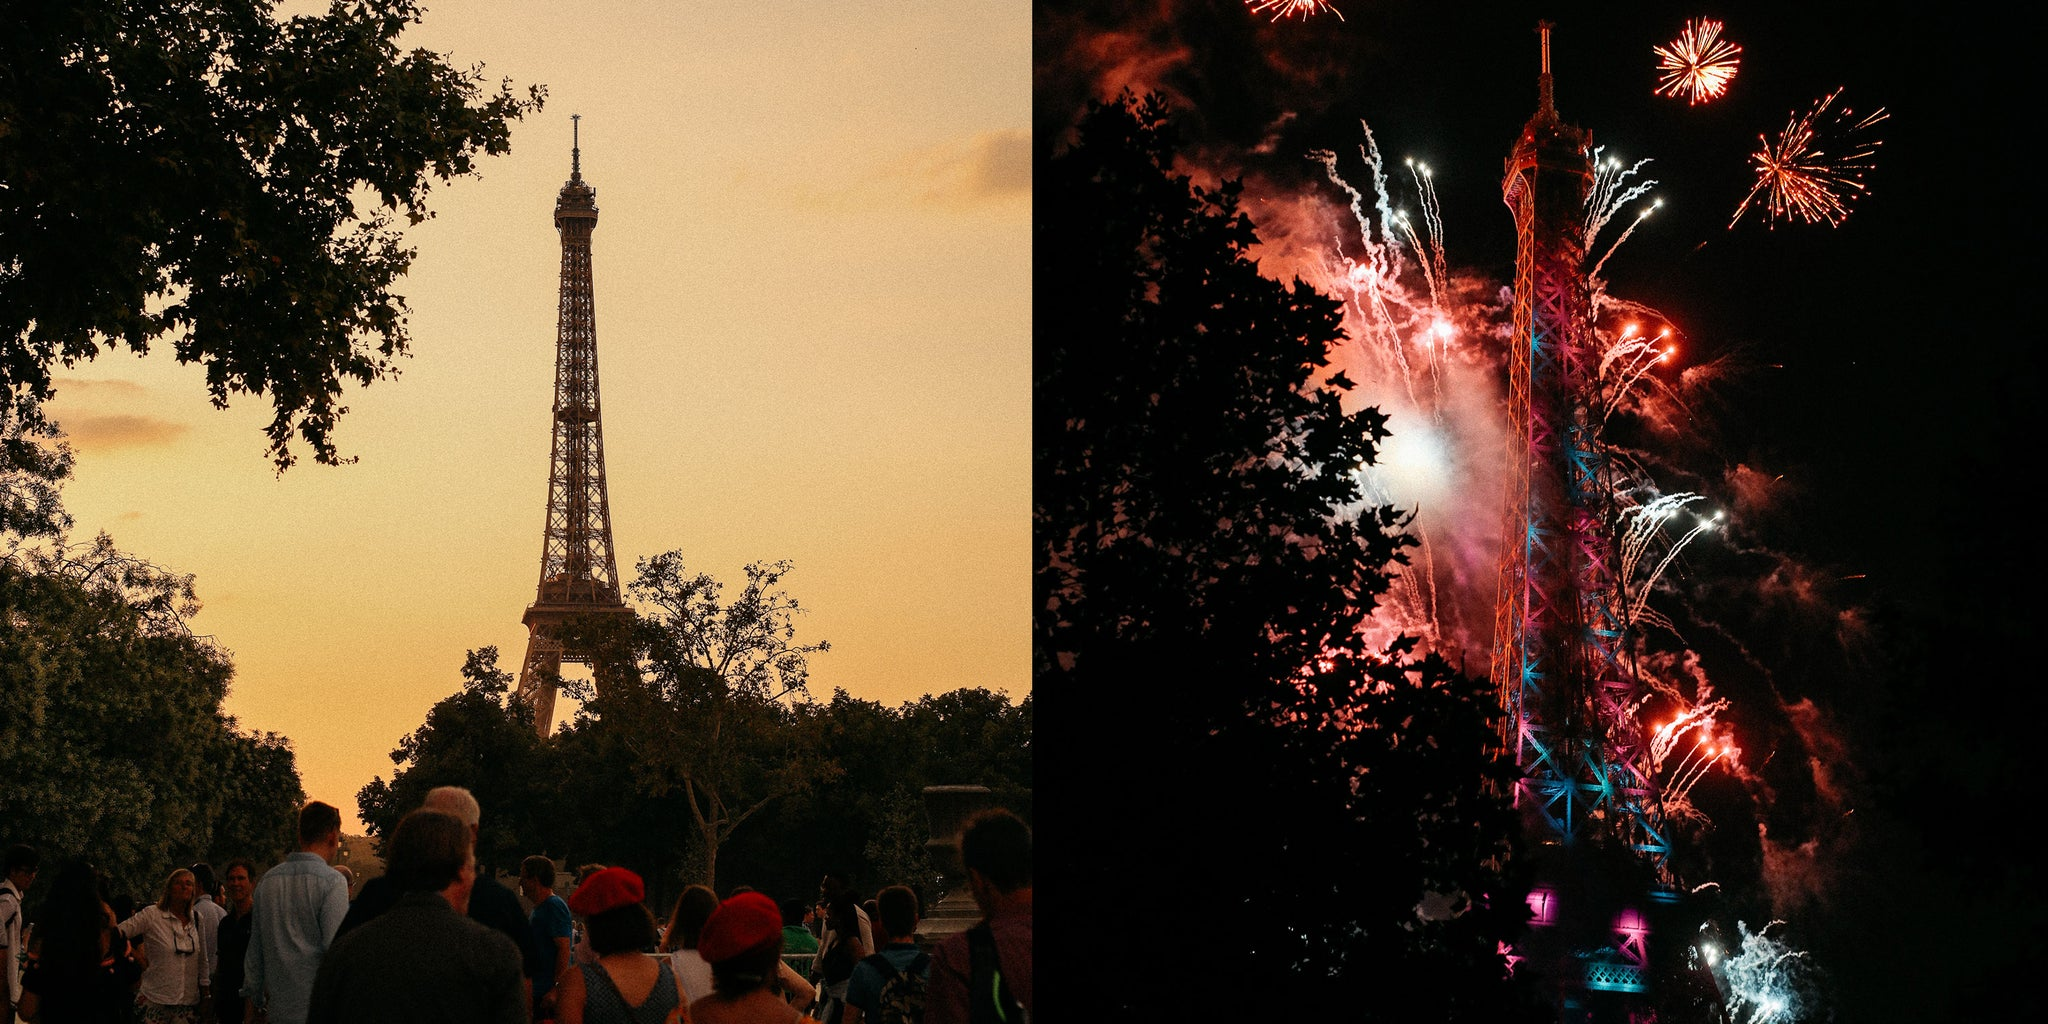 The Eiffel Tower fireworks shot by Nicole Breanne